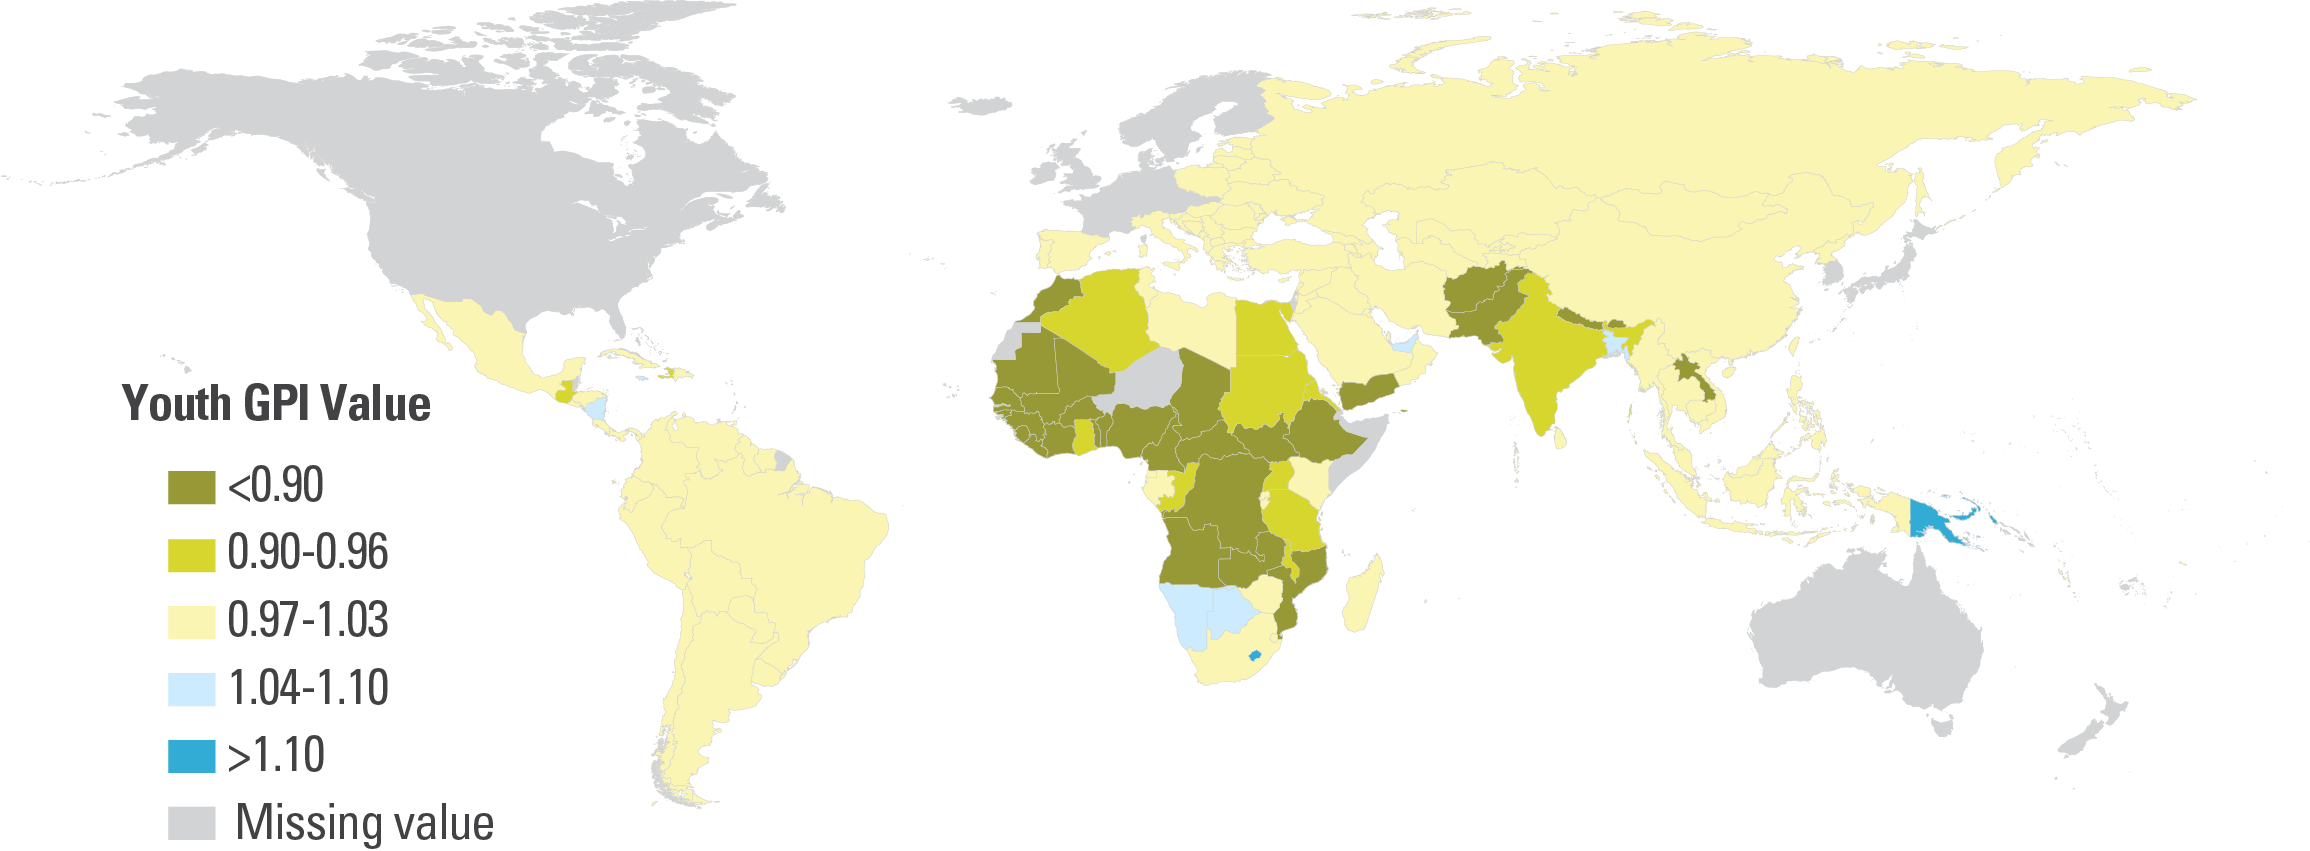 Costa Rica Population Density Map%0A The gender gap in youth literacy is widest in West and Central Africa and  in South Asia